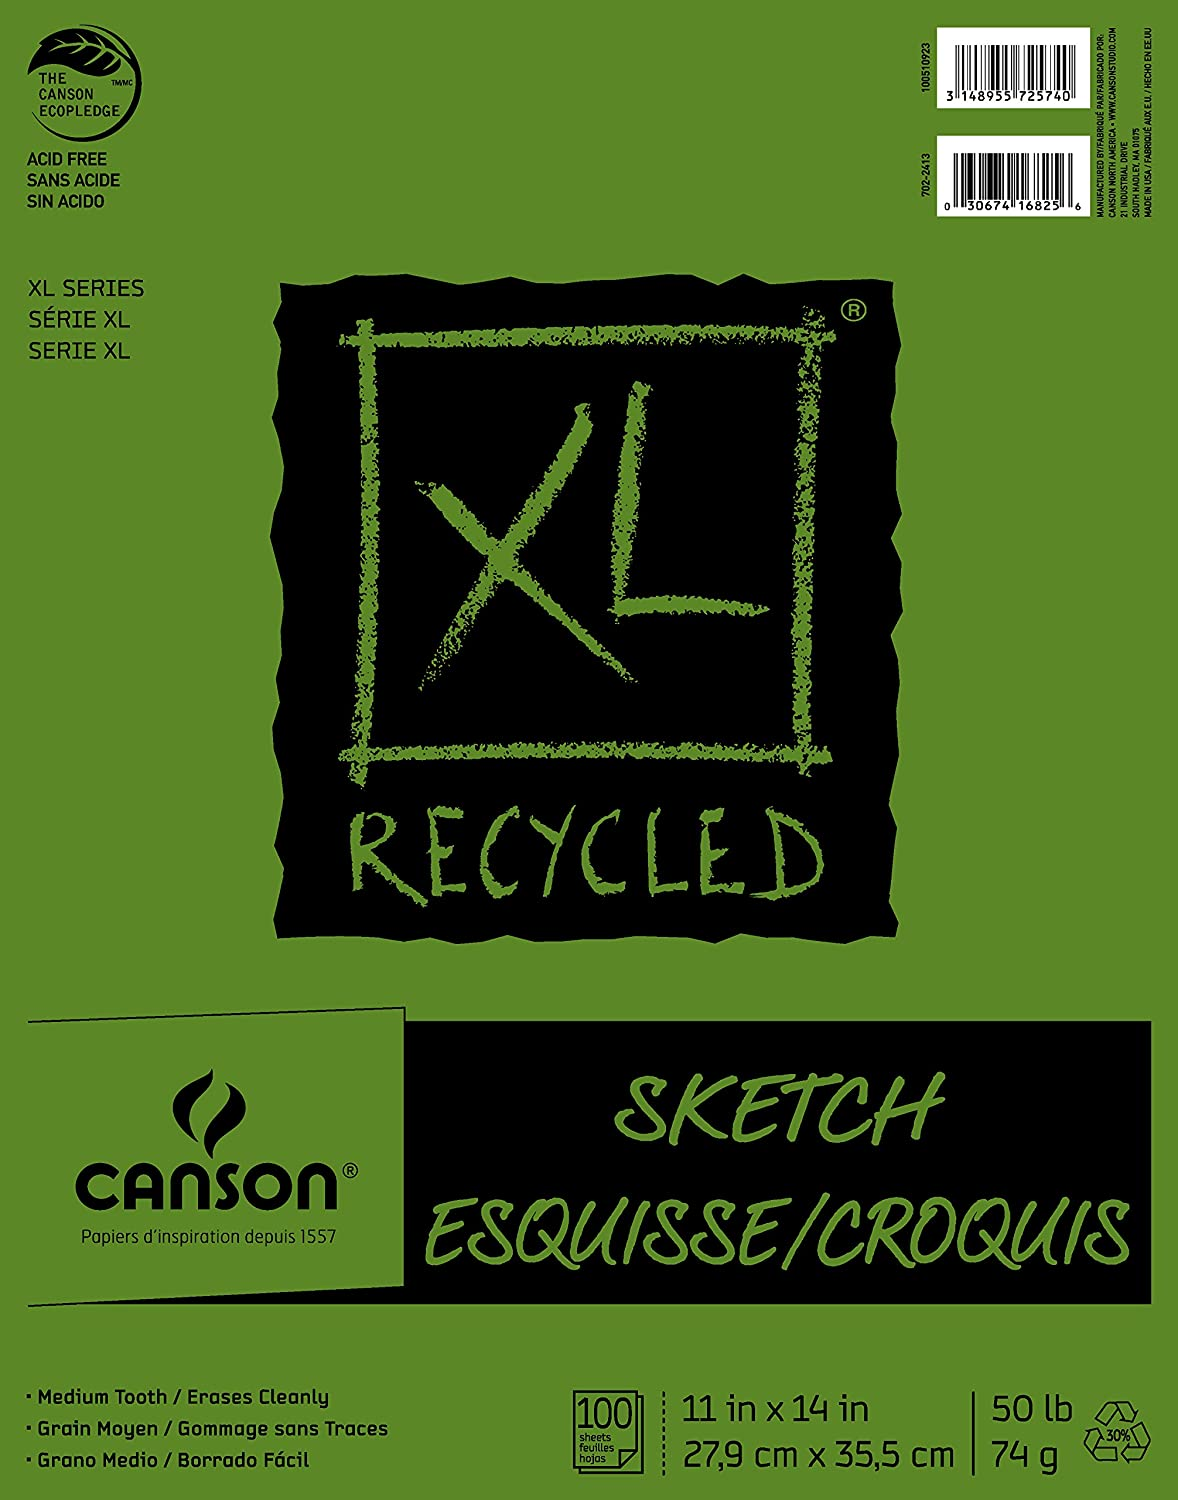 Canson XL Series Recycled Paper Sketch Pad, Fold Over, 50 Pound, 3.5 x 5.5 Inch, 100 Sheets Canson Inc. 100510920